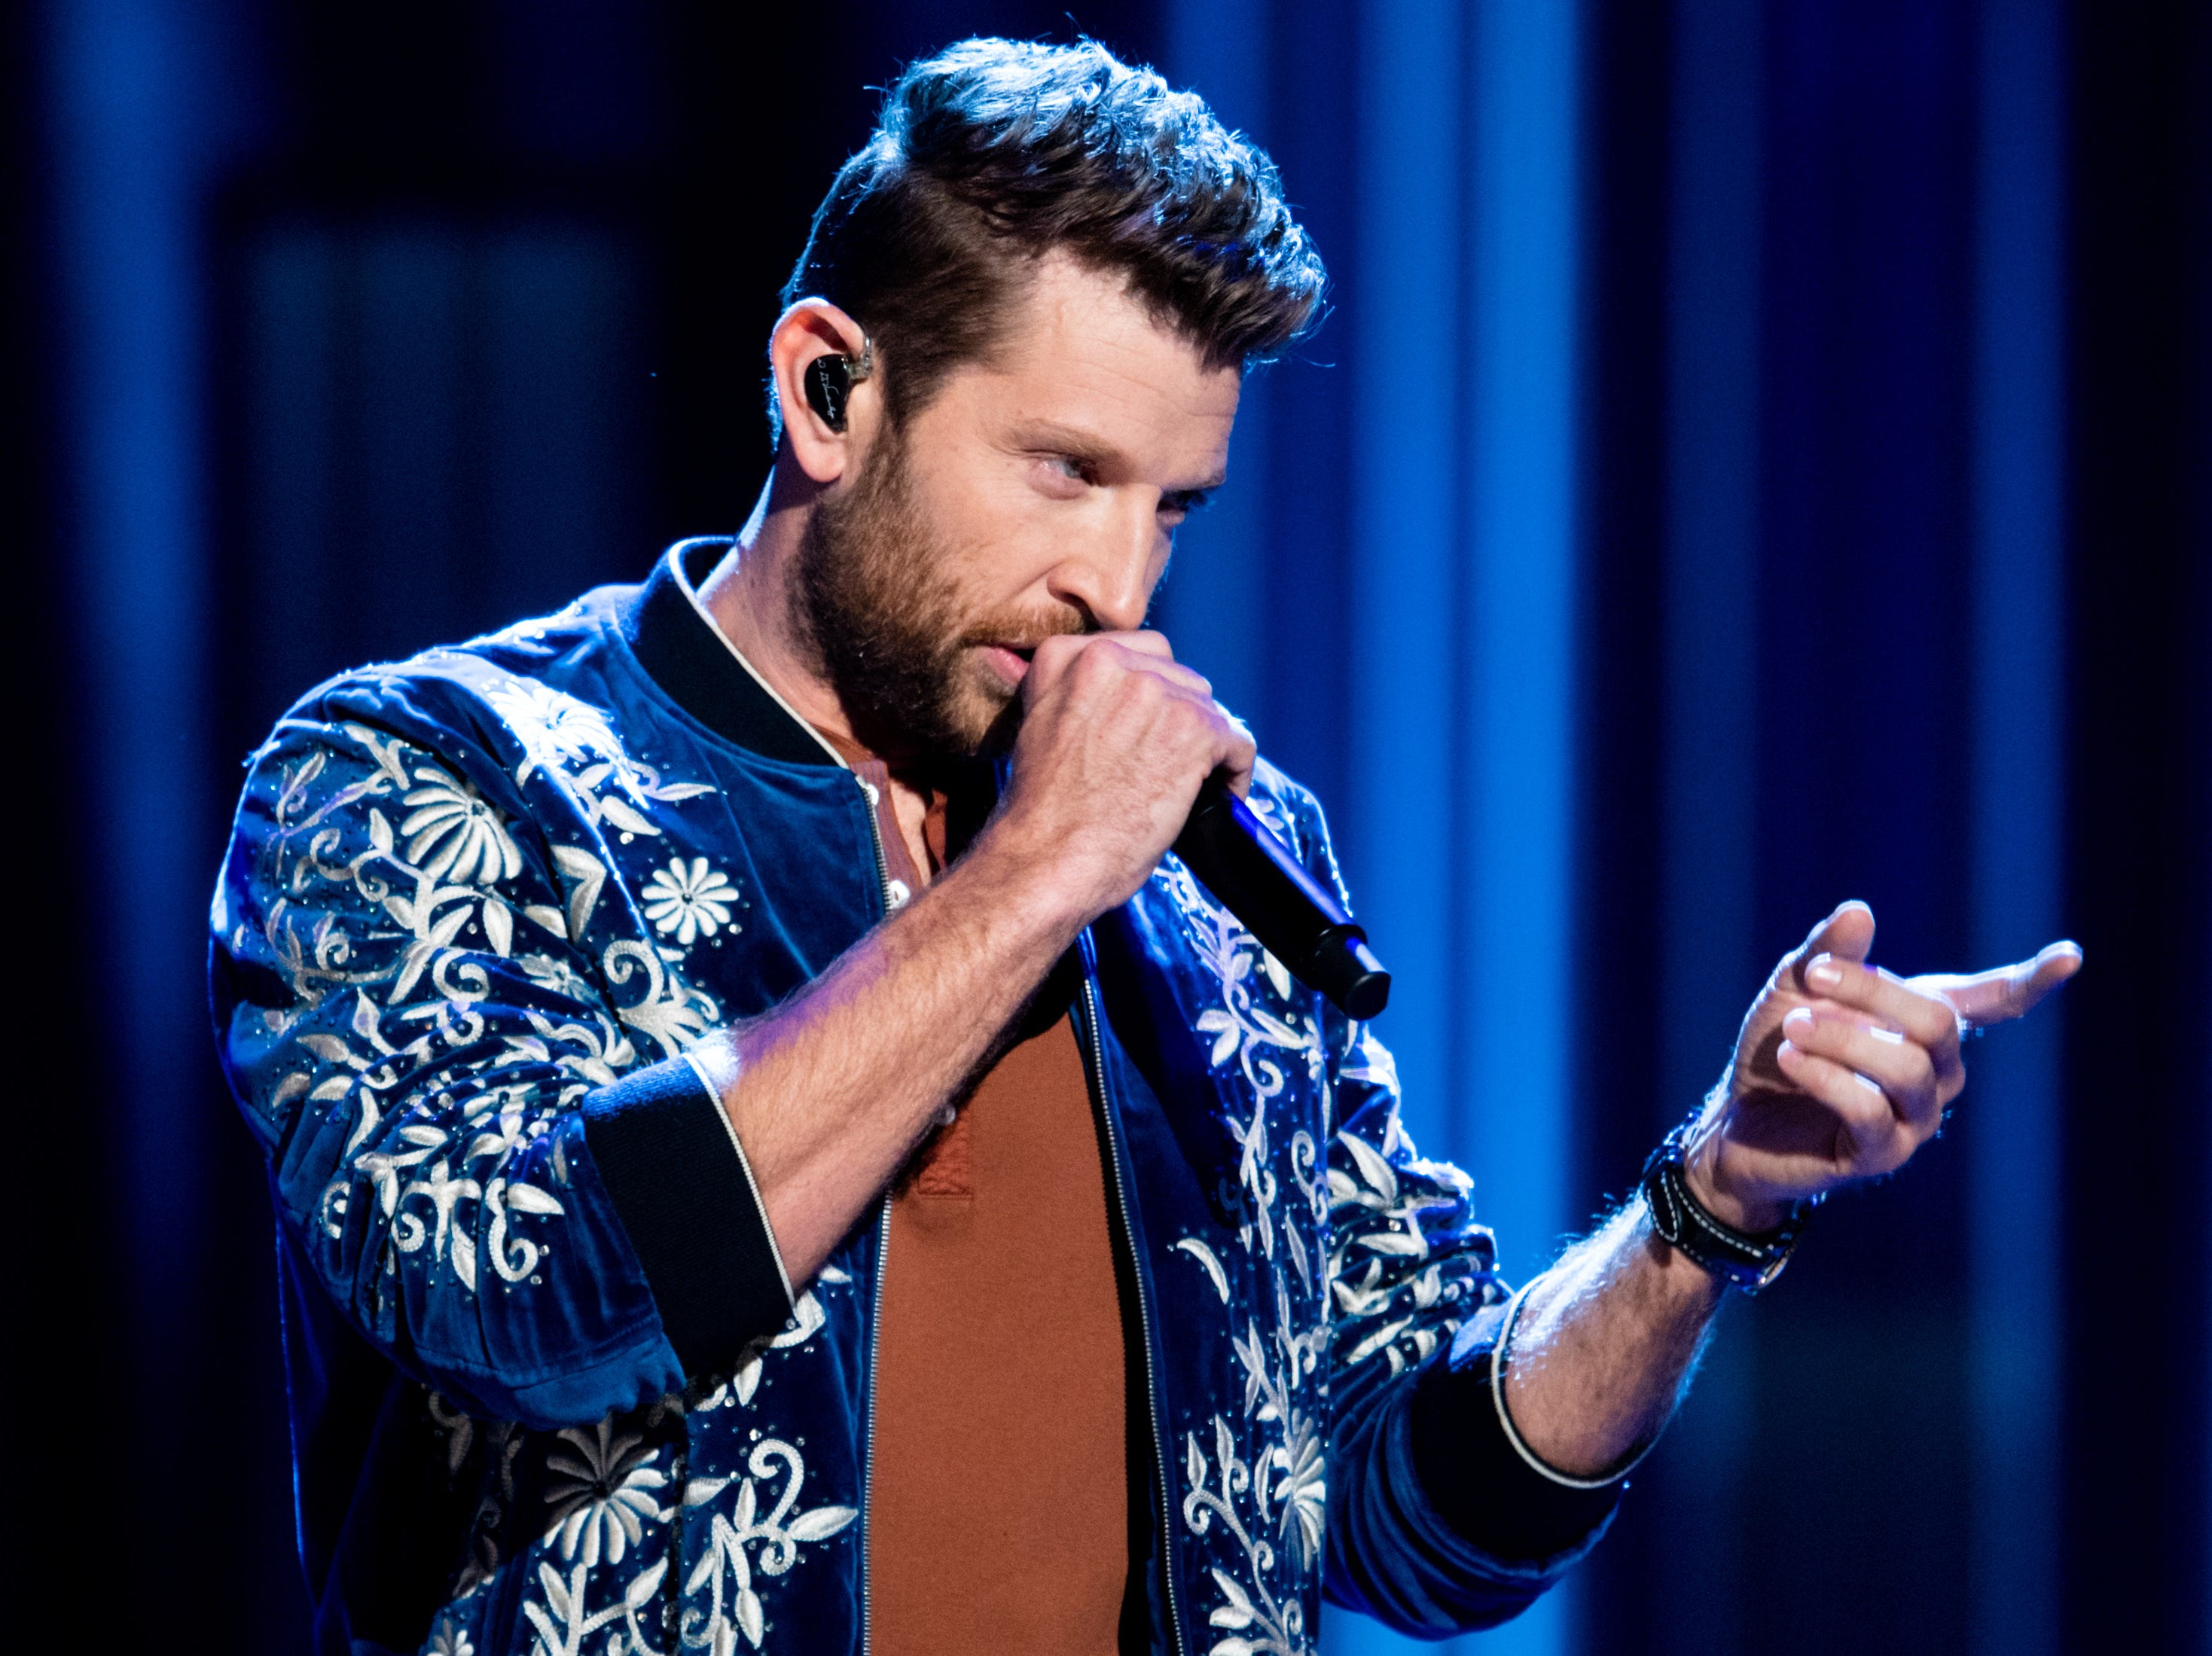 Brett Eldredge performs during the An Opry Salute to Ray Charles concert at The Grand Ole Opry in Nashville, Tenn., Monday, Oct. 8, 2018.